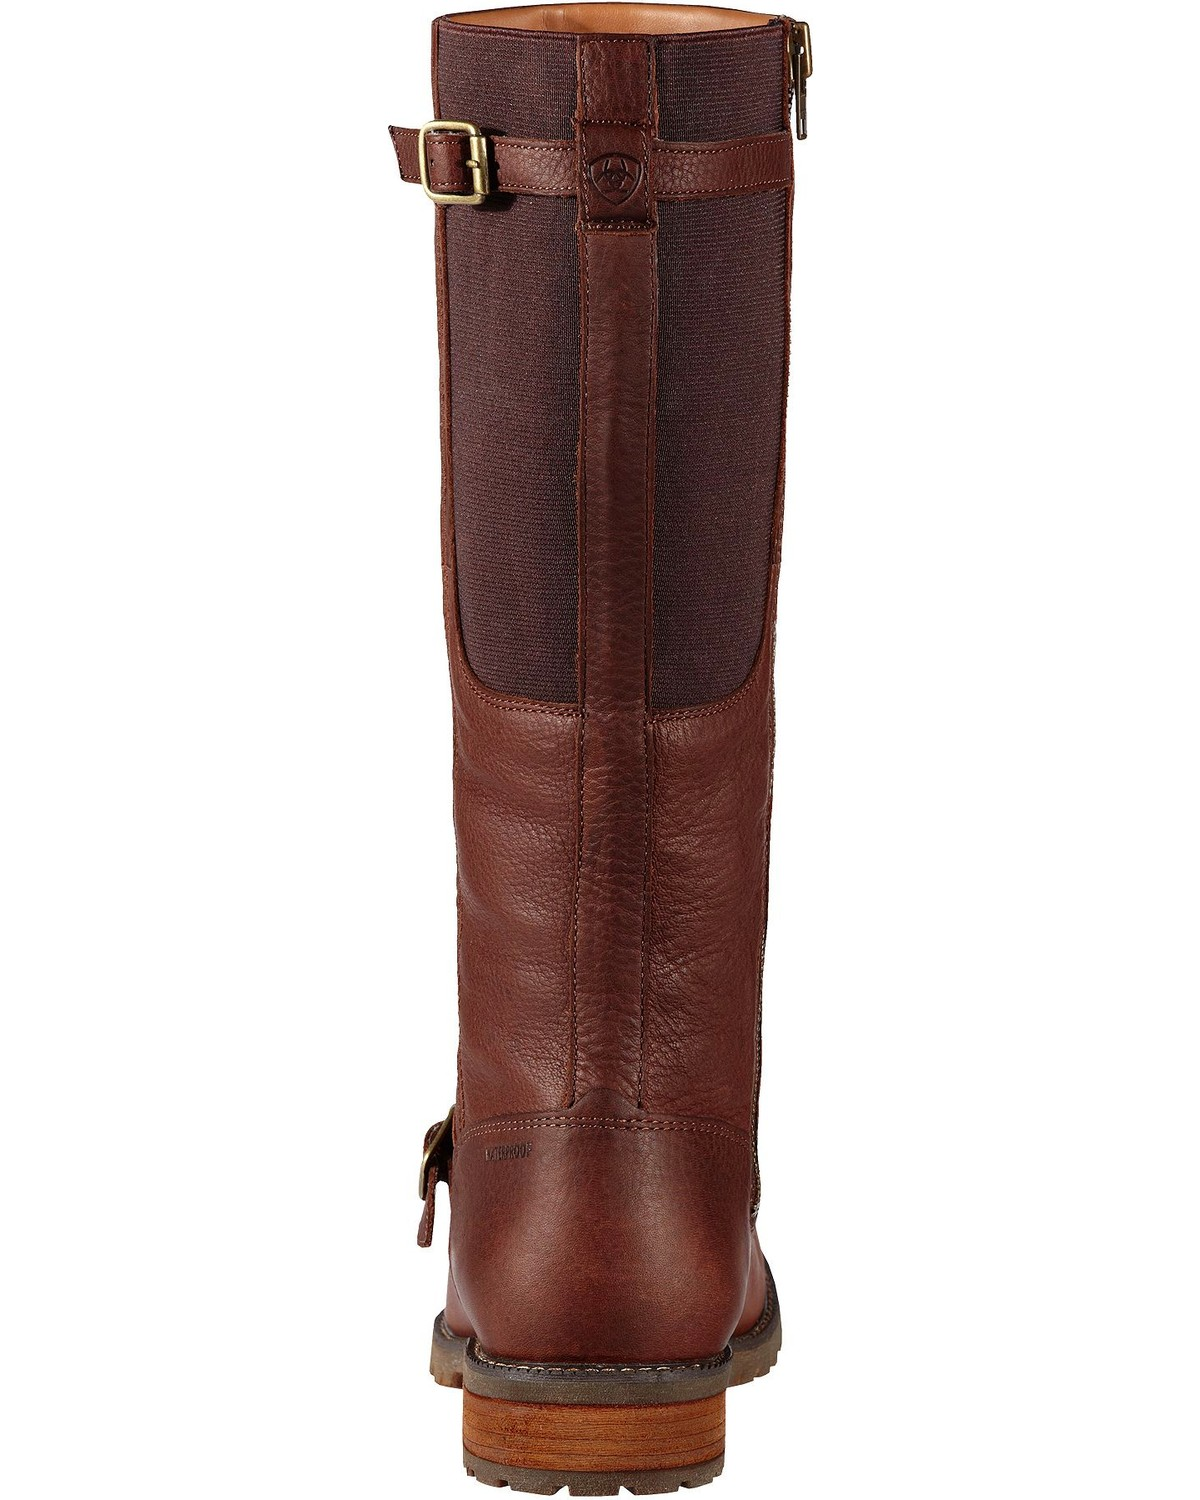 Ariat Stanton Waterproof Riding Boots - Country Outfitter